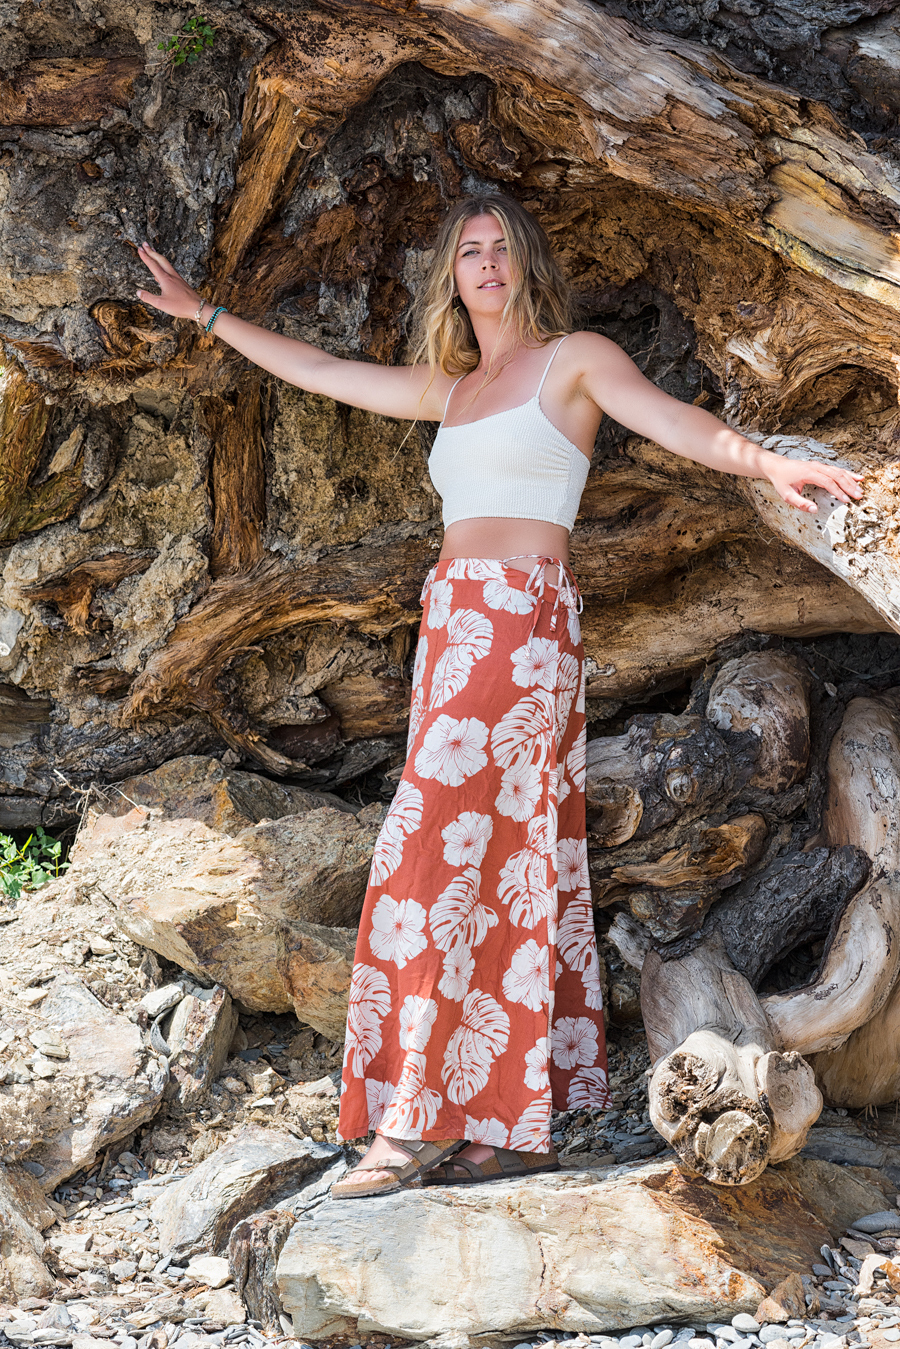 Hannah at a massive tree root / Photography by Mike Lyne, Model Hancharlotte, Post processing by Mike Lyne / Uploaded 24th June 2021 @ 12:17 PM